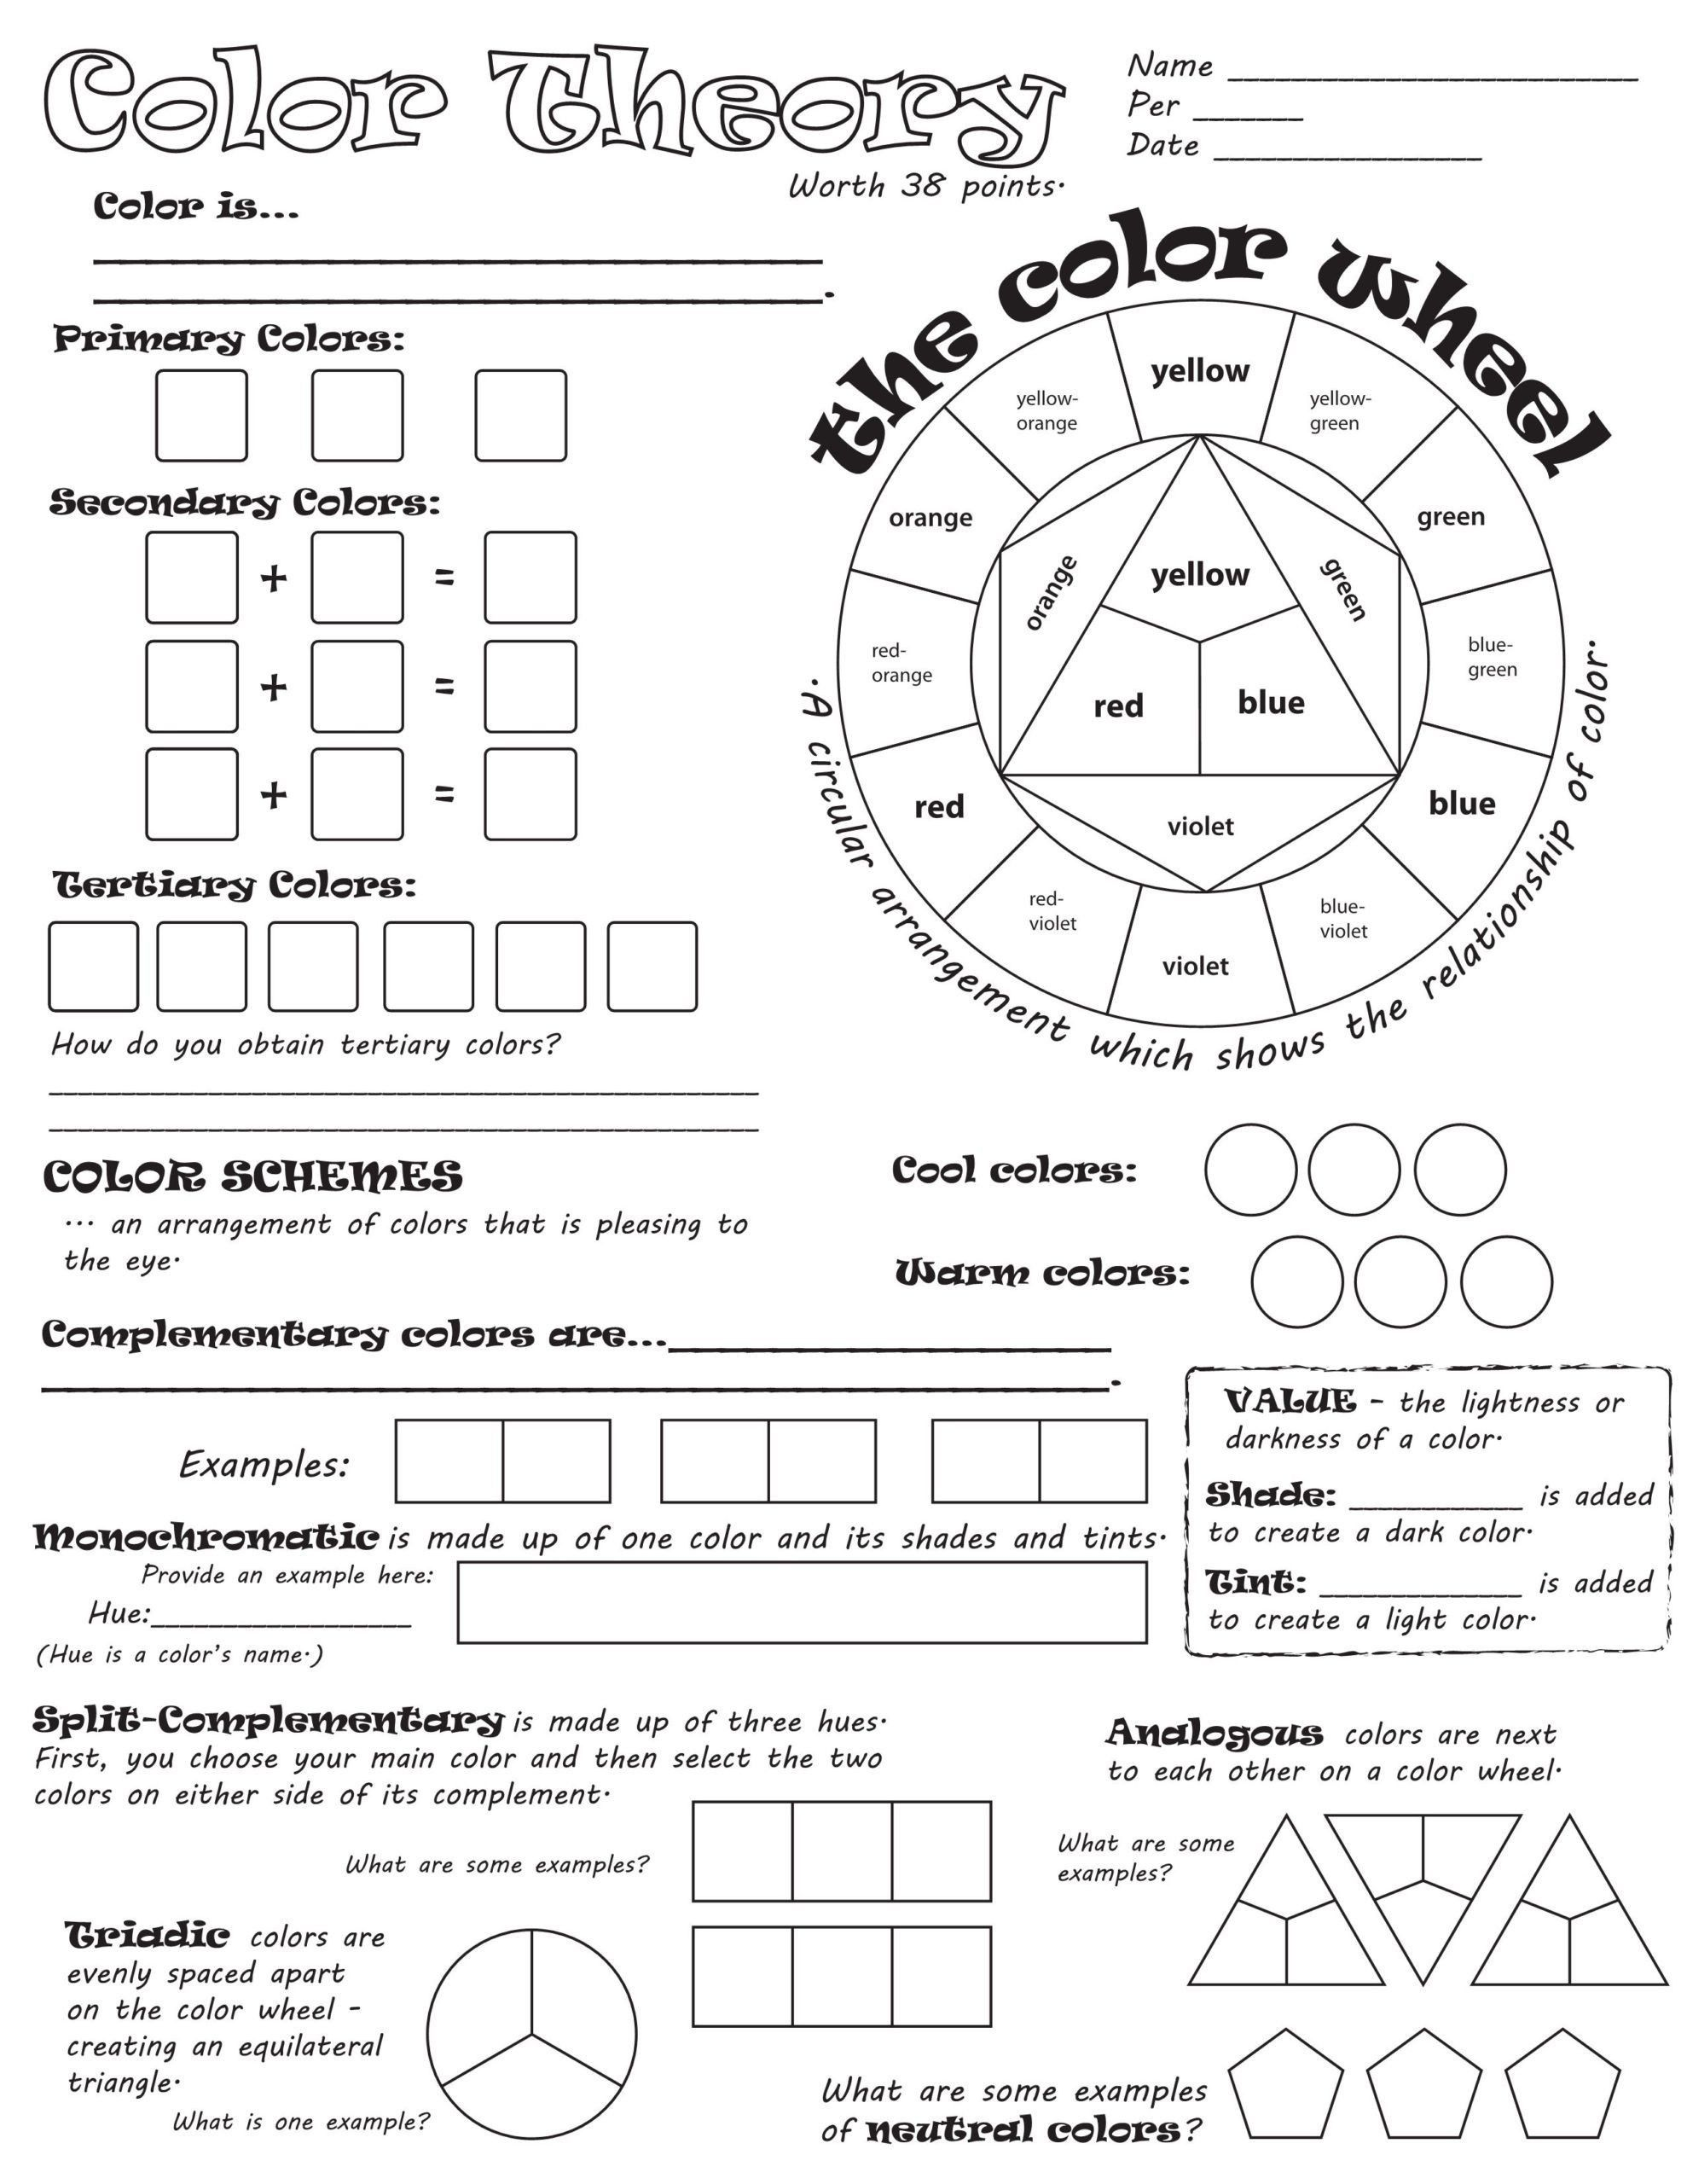 3 Worksheets Which Equation Is Right 5 Worksheet Grade Math Worksheets Equation Worksheet Tim In 2020 Art Worksheets Art Education Lessons Art Curriculum [ 2560 x 1978 Pixel ]